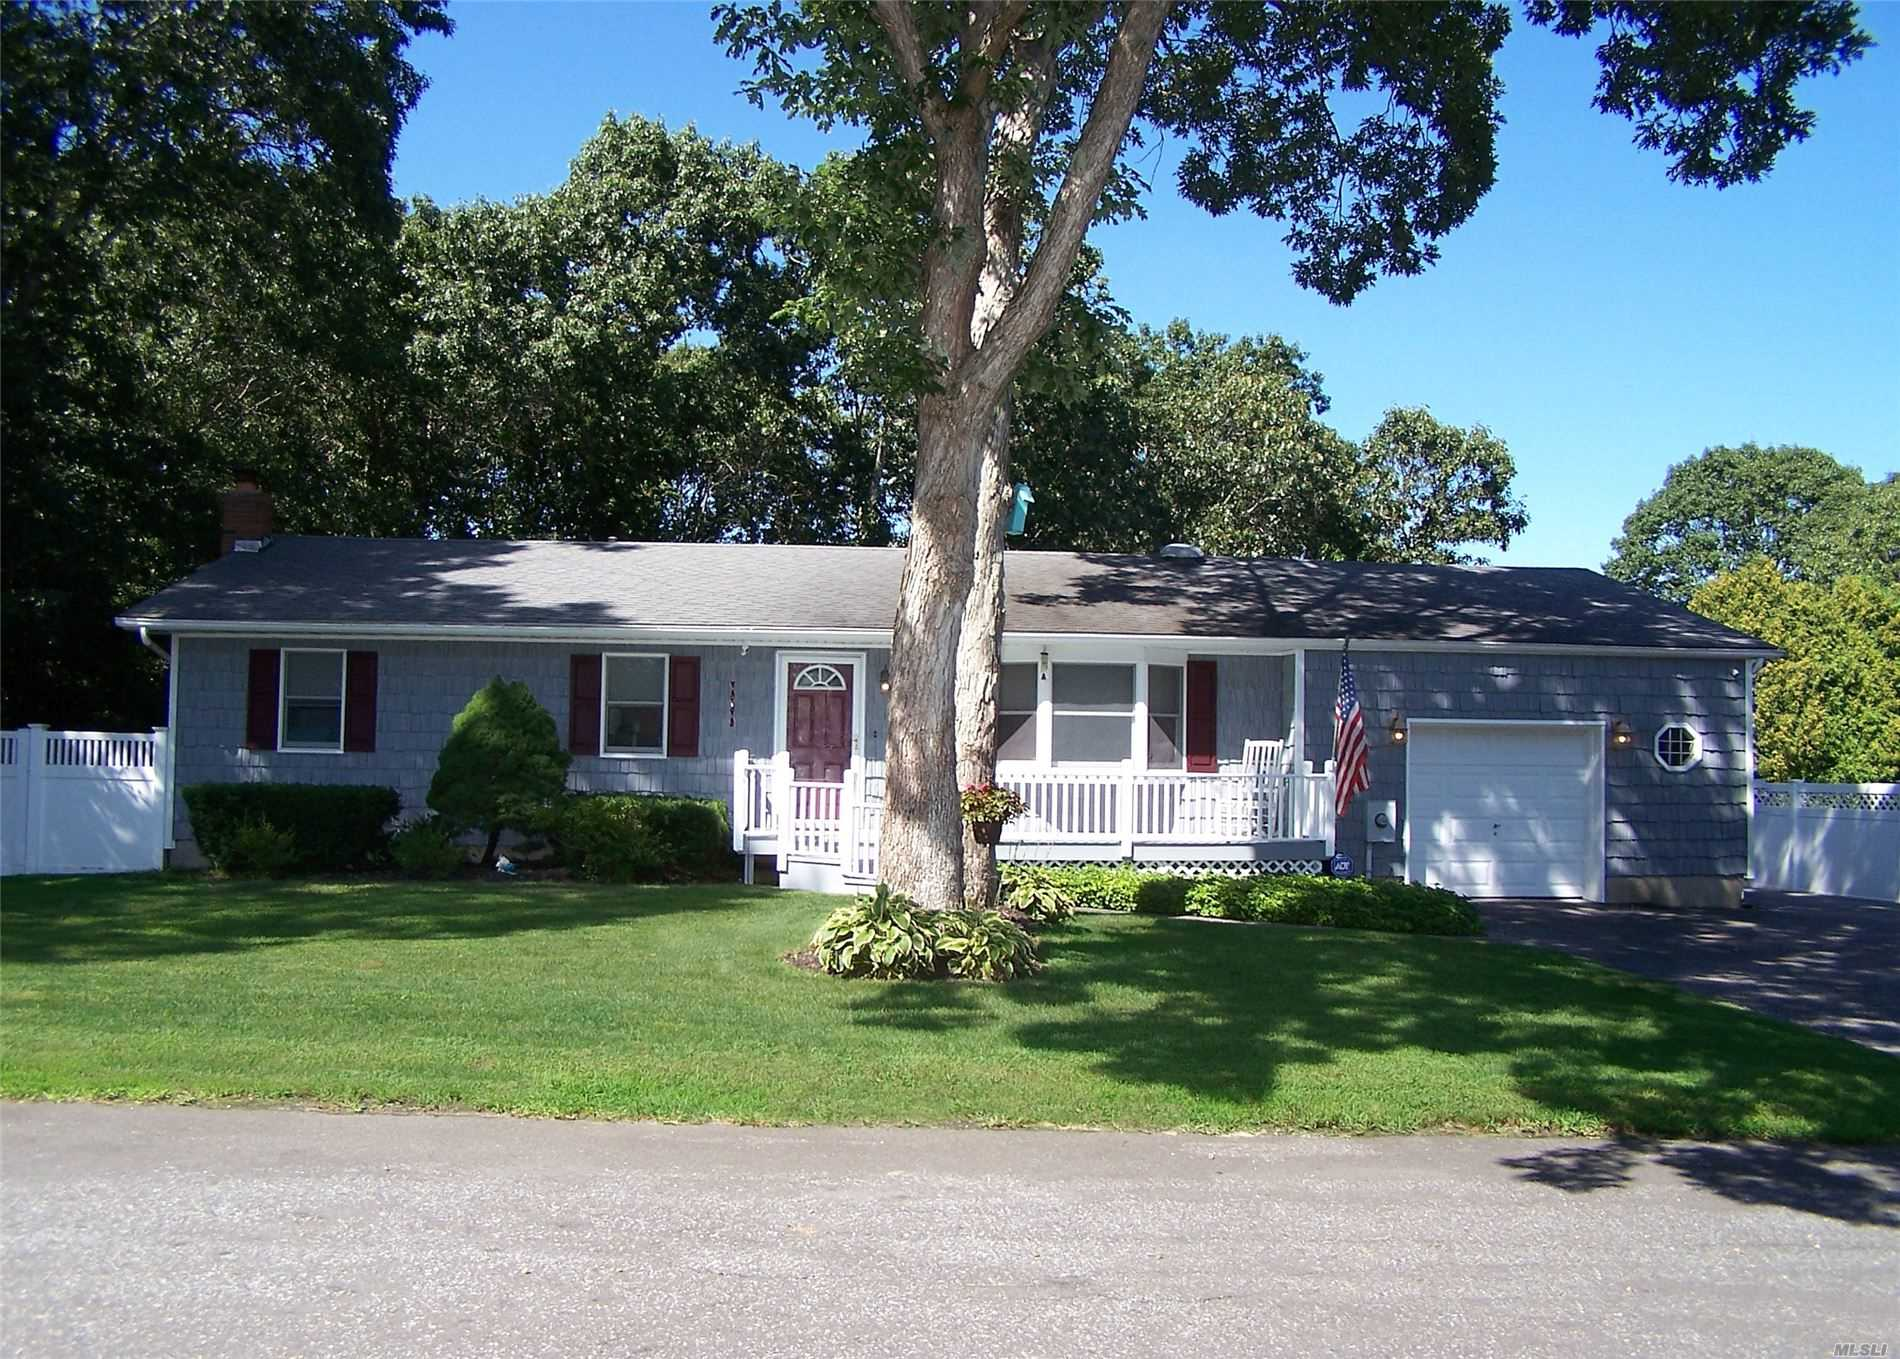 Adorable 3Bdrm, 2 Full Bath Ranch w/ Newly Refinished Hardwood Floors, Living Room Plus Den w/ Built Ins on Main Level, Dining w/ Sliders to Rear Deck&Pool, Master Suite w/ Walk in Closet Plus Full Size Closet, Full Bath&Sliders, Lots of Storage (2 Sheds, Attic, 1.5 Garage, Full Fin Bsmt) Front Porch, Double Wide Driveway w/ Cobblestone Apon & Side Parking for Boat/railer/RV, Fully Fenced Backyard, Ceiling Fans, CAC, IGS, Less Than 3 Minutes to Both LIE & Sunrise Hwy. South St School.